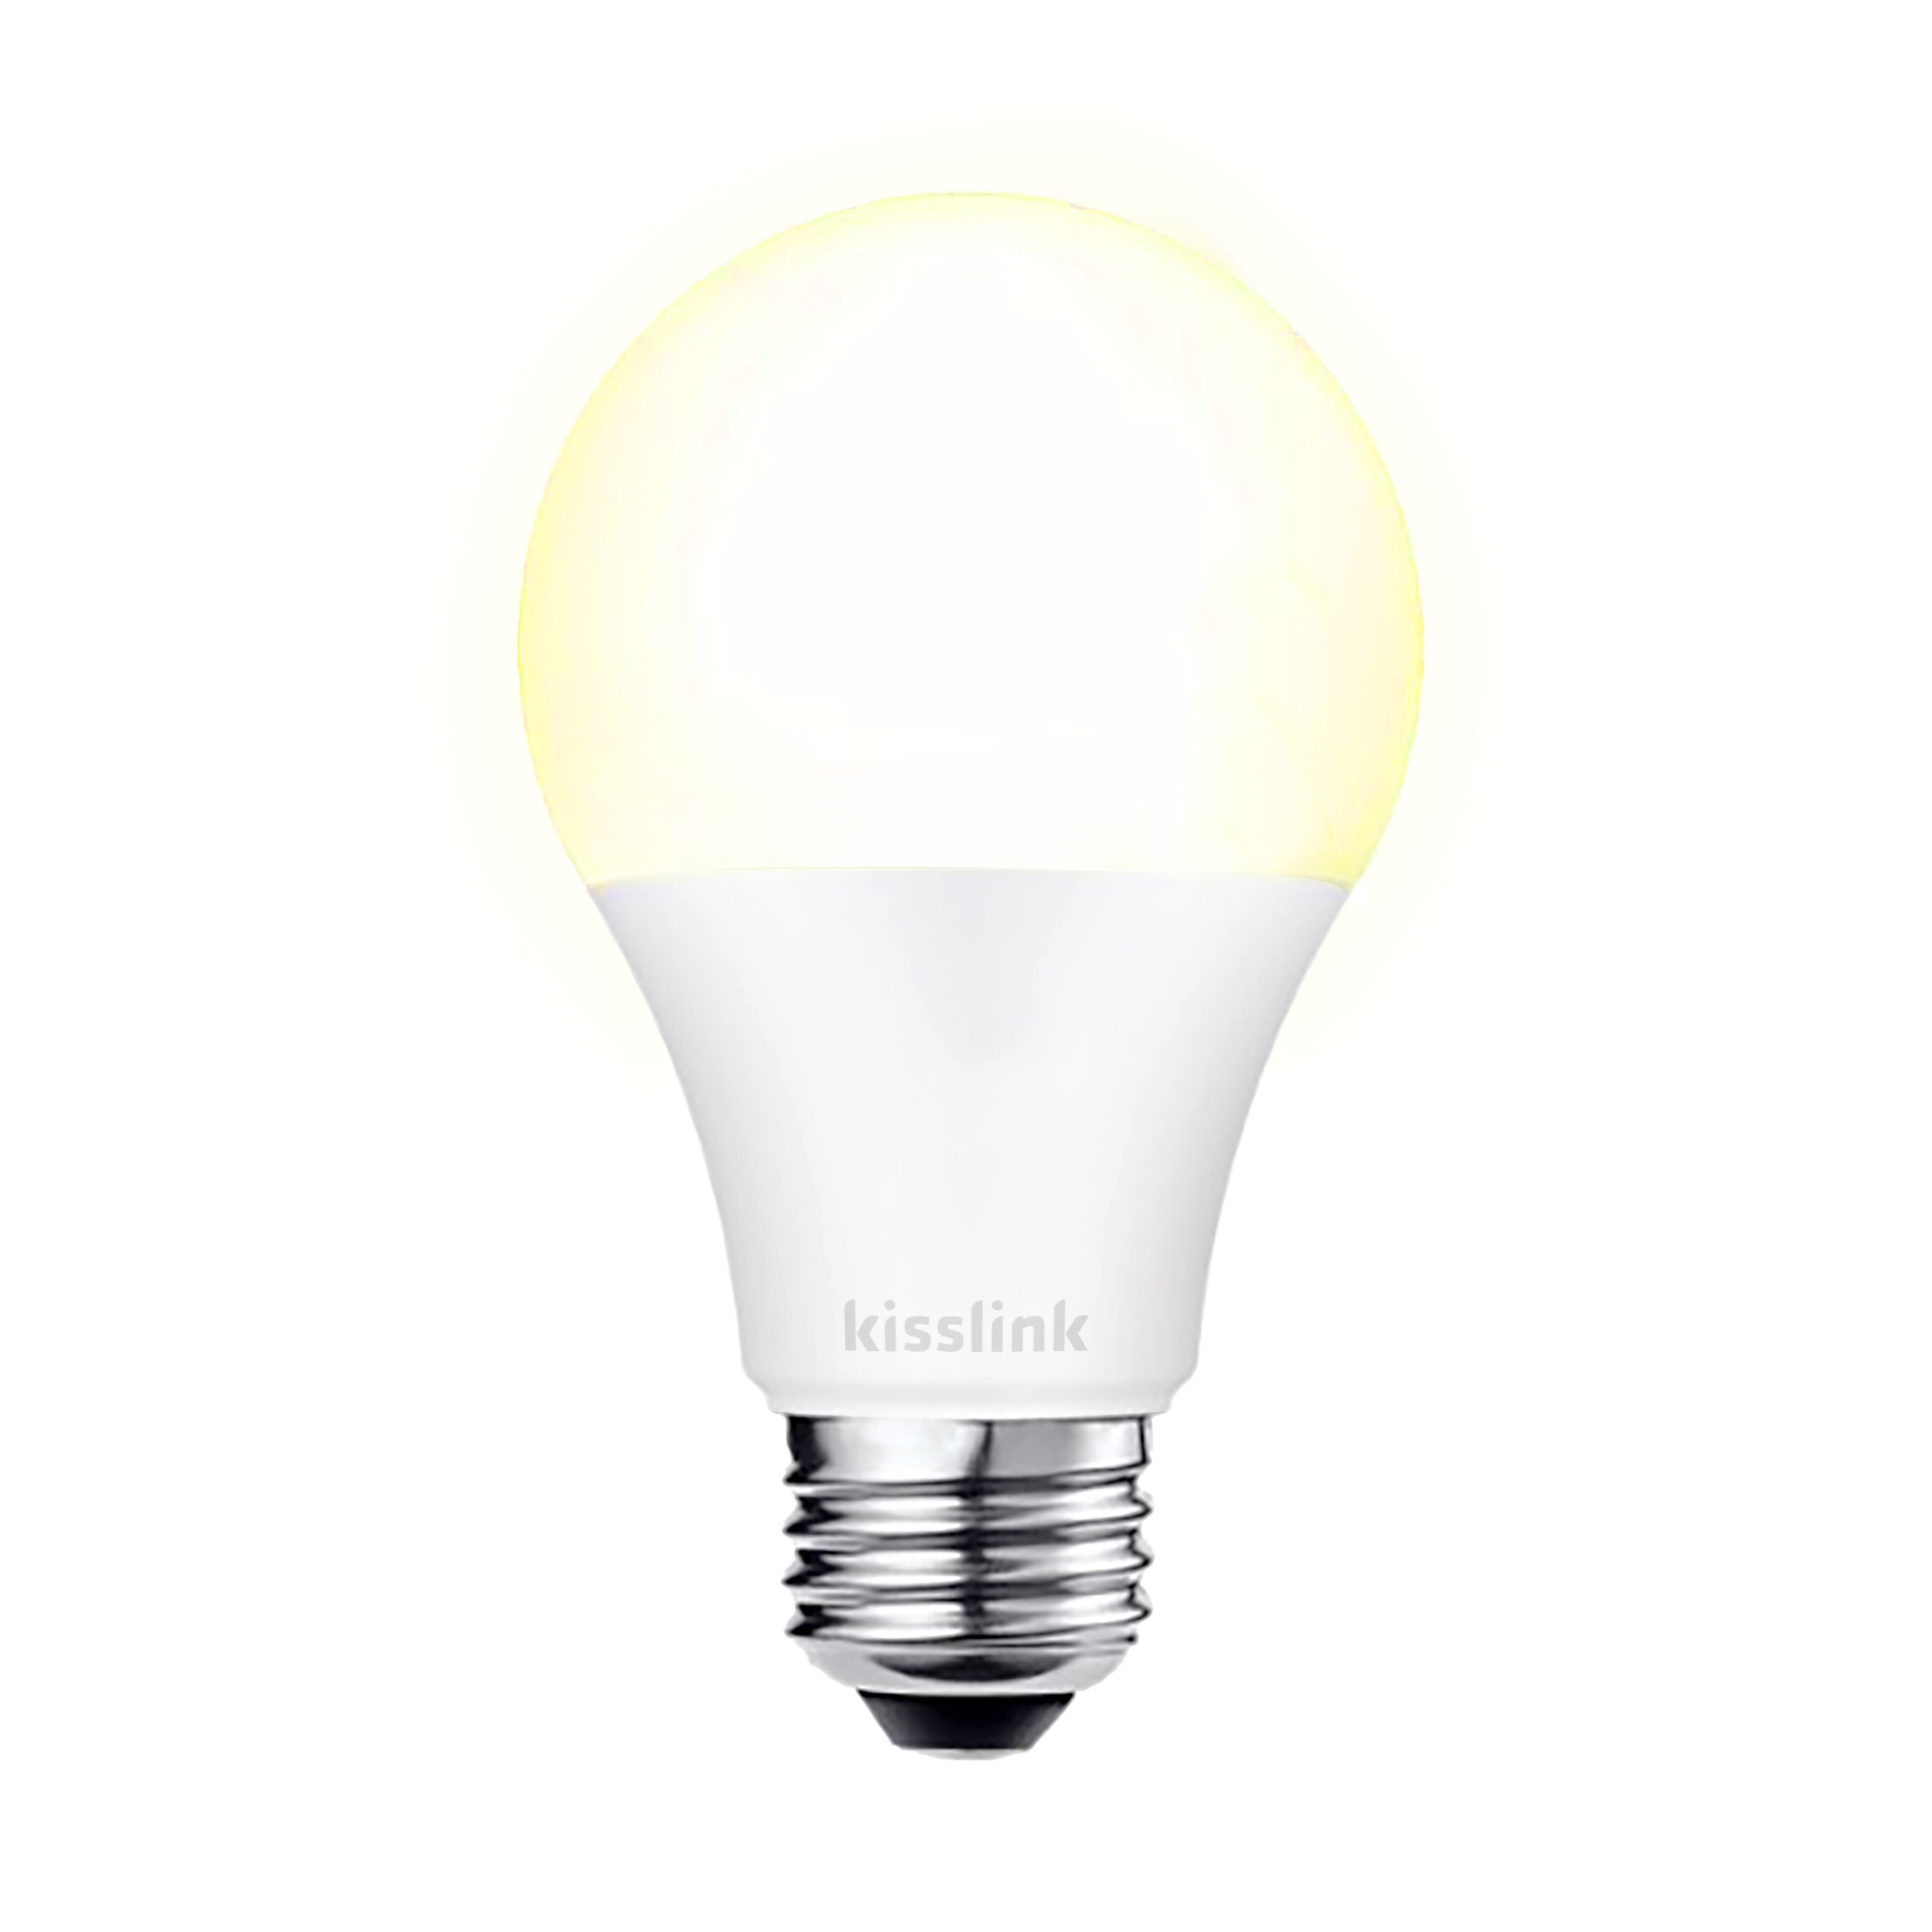 kisslink SB200 Wi-Fi LED Smart Light Bulb, 60W Equivalent, No Hub Required, Warm White, Works with Alexa and Google Assistant